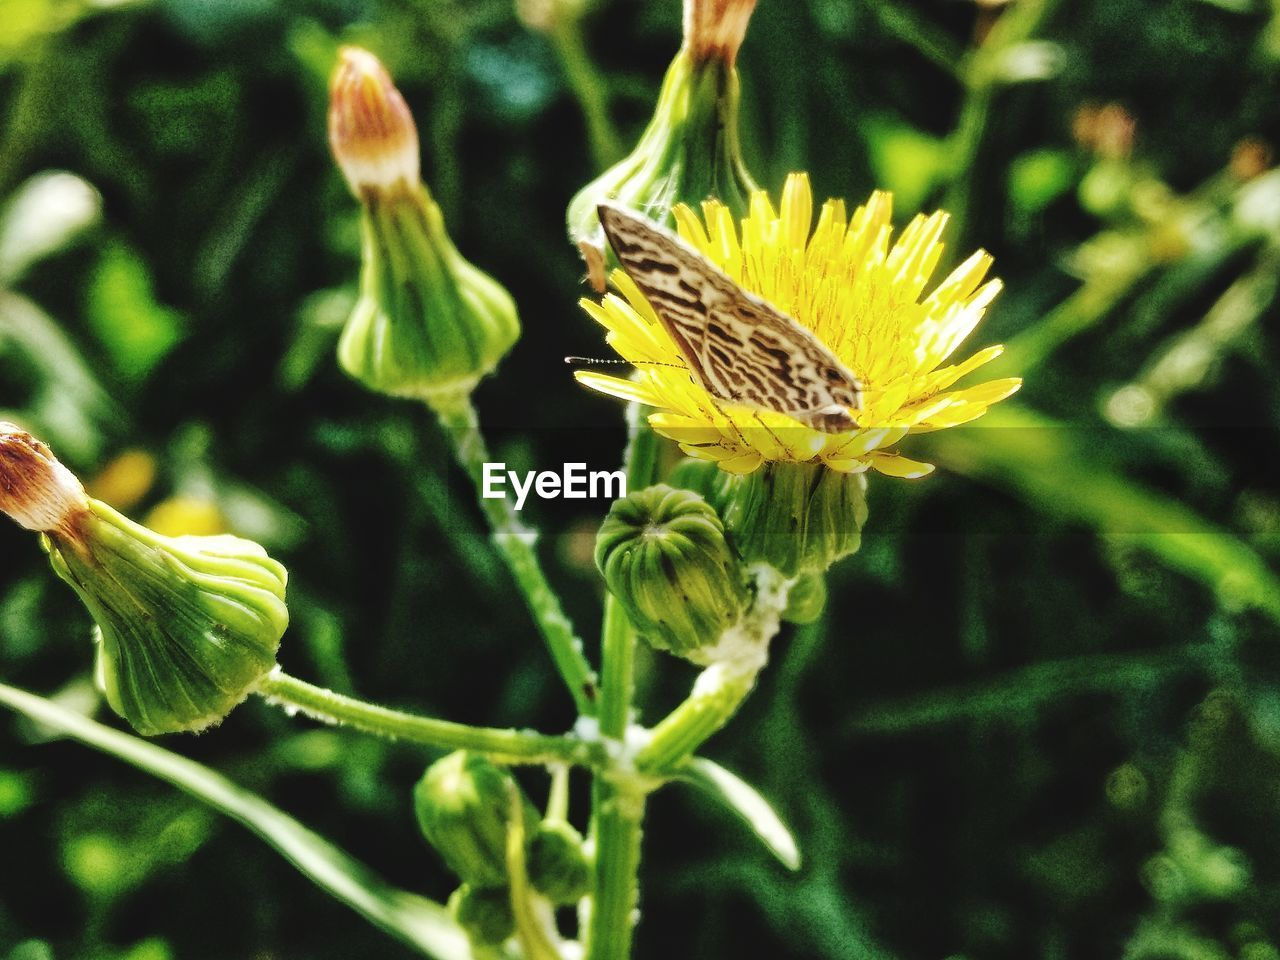 growth, flower, plant, nature, fragility, no people, green color, beauty in nature, outdoors, close-up, petal, yellow, leaf, focus on foreground, flower head, day, freshness, thistle, blooming